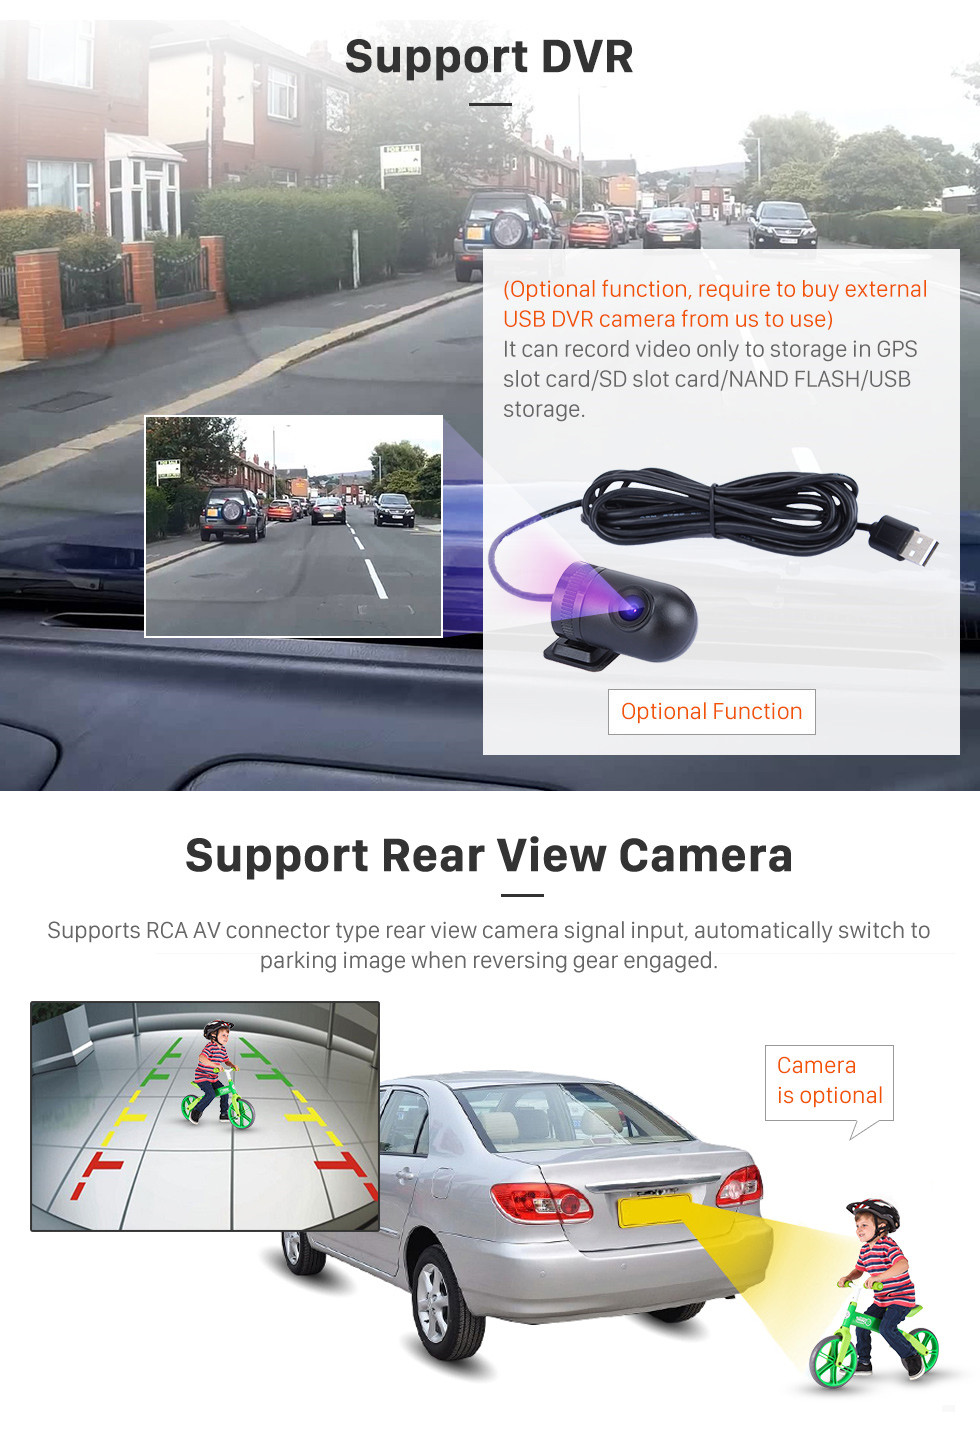 Seicane OEM Android 9.0 Radio GPS navigation system for 2008-2012 KIA CERATO (AT) Bluetooth MP3 HD 1024*600 Touchscreen OBD2 DVR Rearview camera TV 3G WIFI Steering Wheel Control USB 1080P Video DVD Player  Mirror link